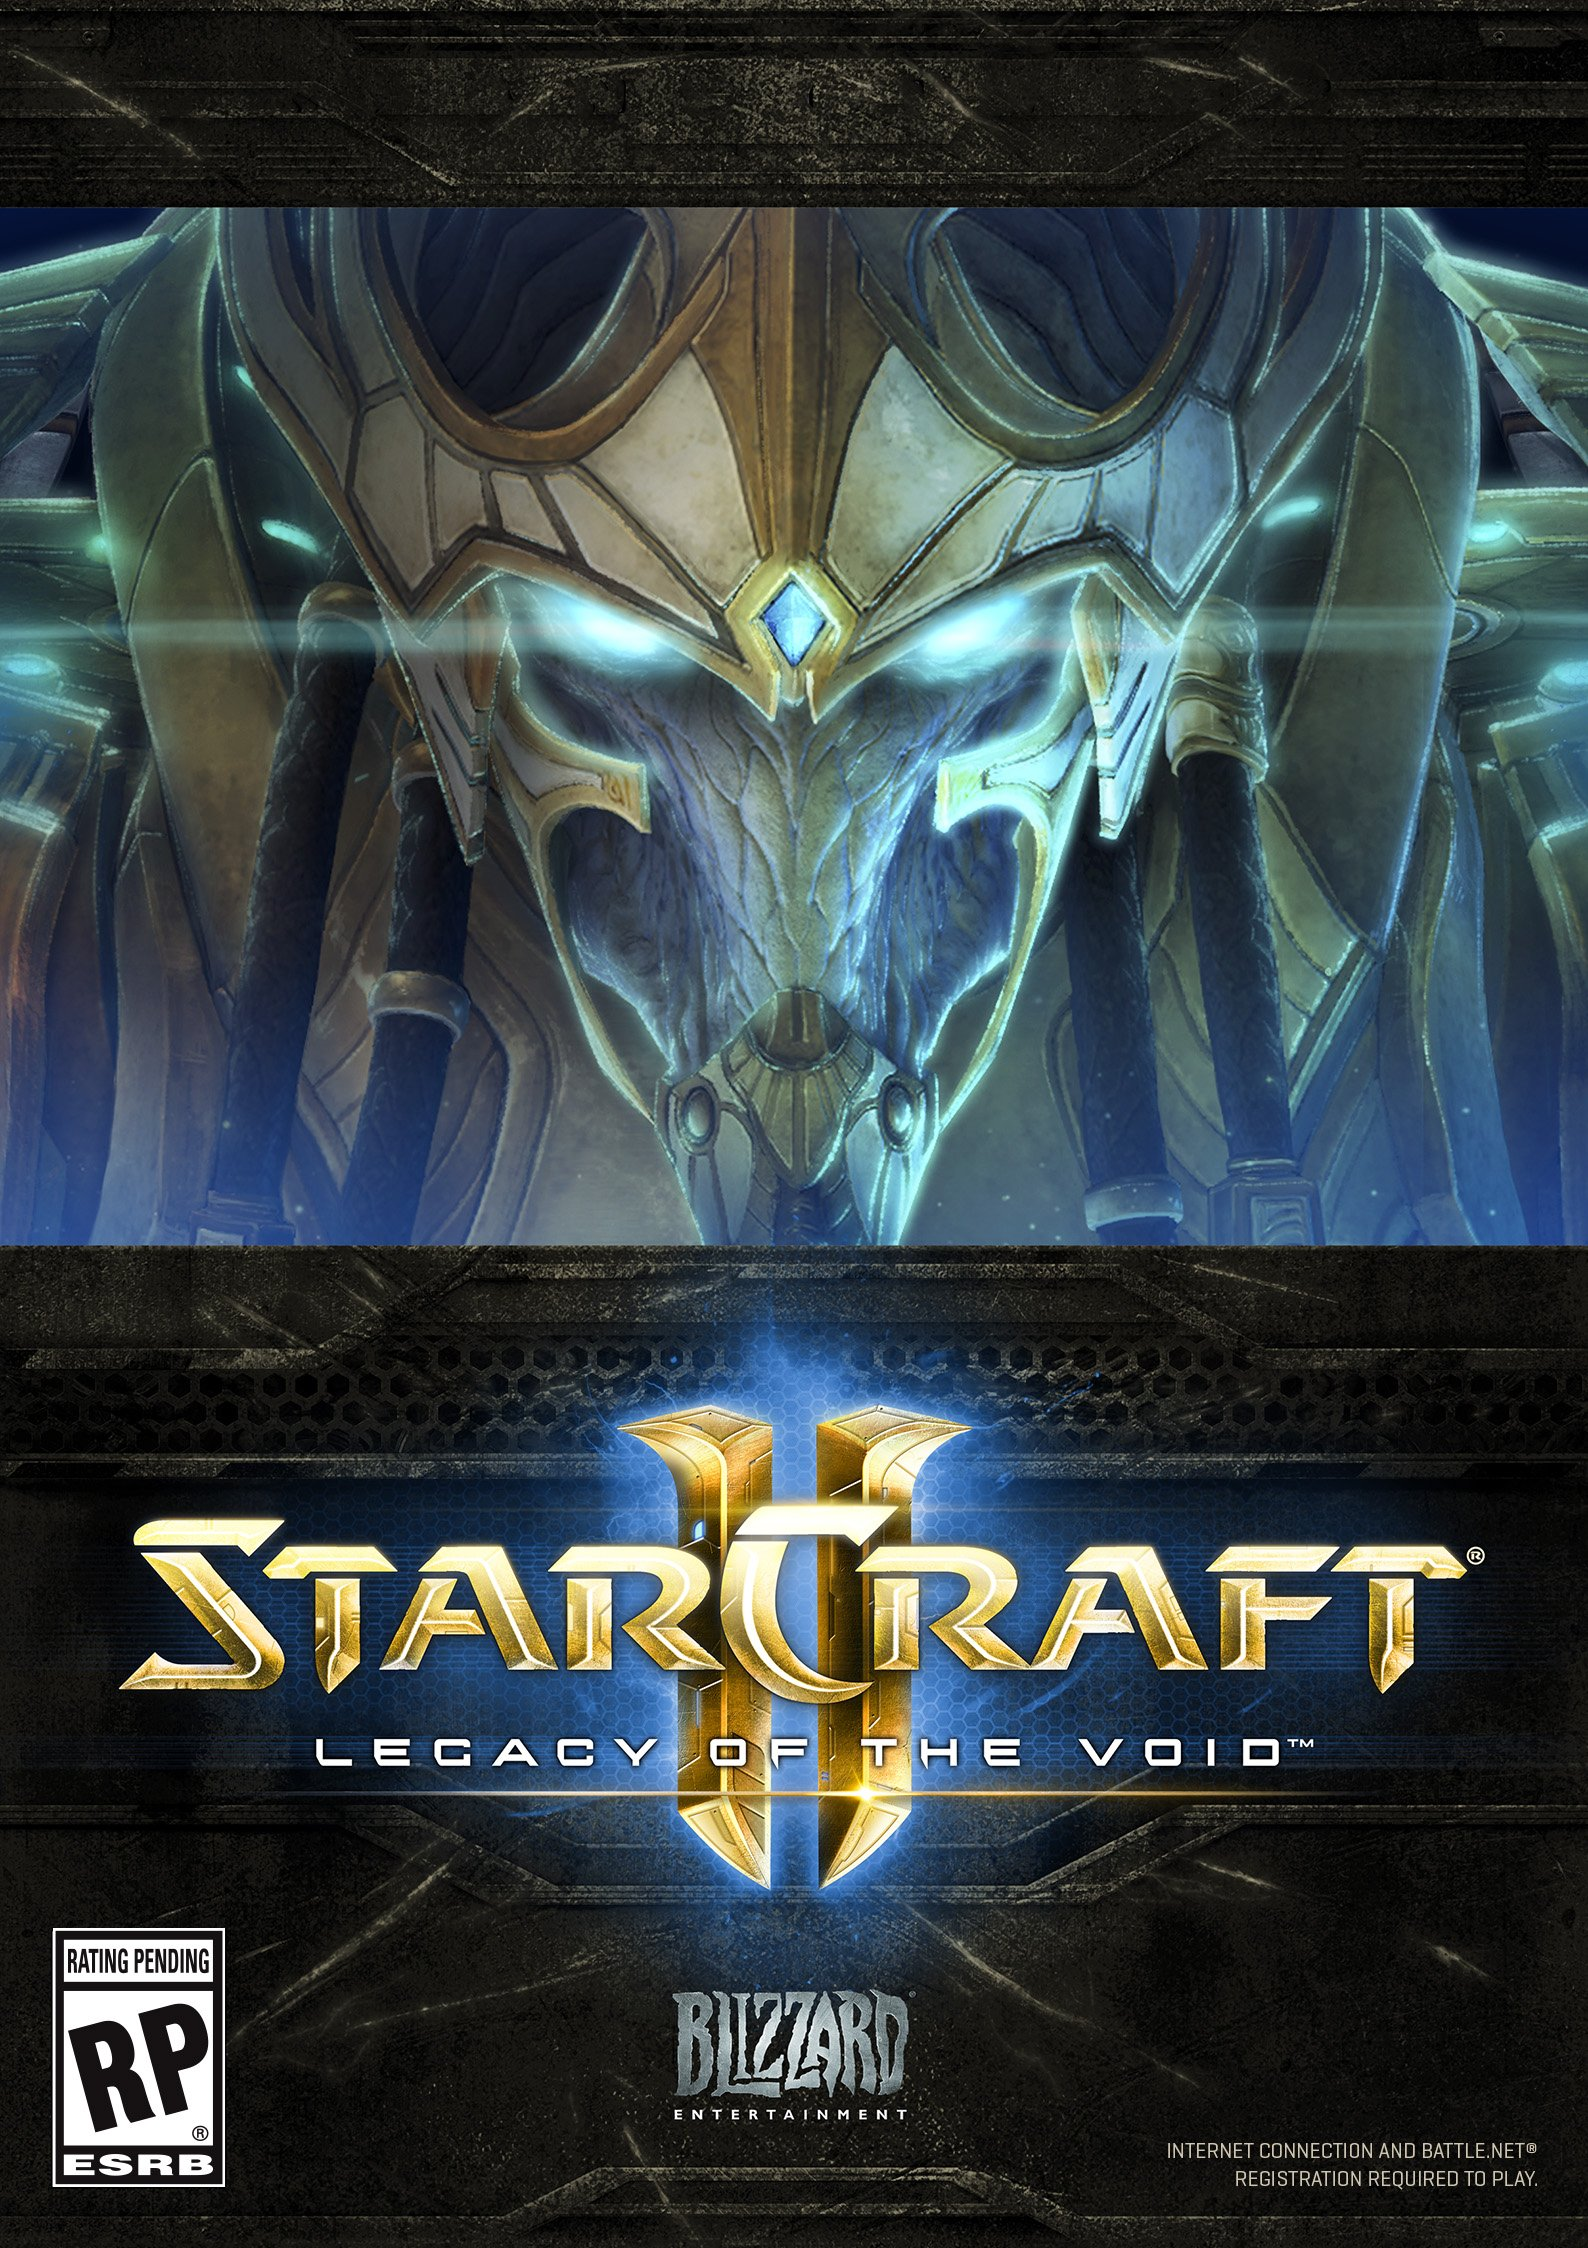 Starcraft II: Legacy of the Void - Standard Edition by Blizzard Entertainment